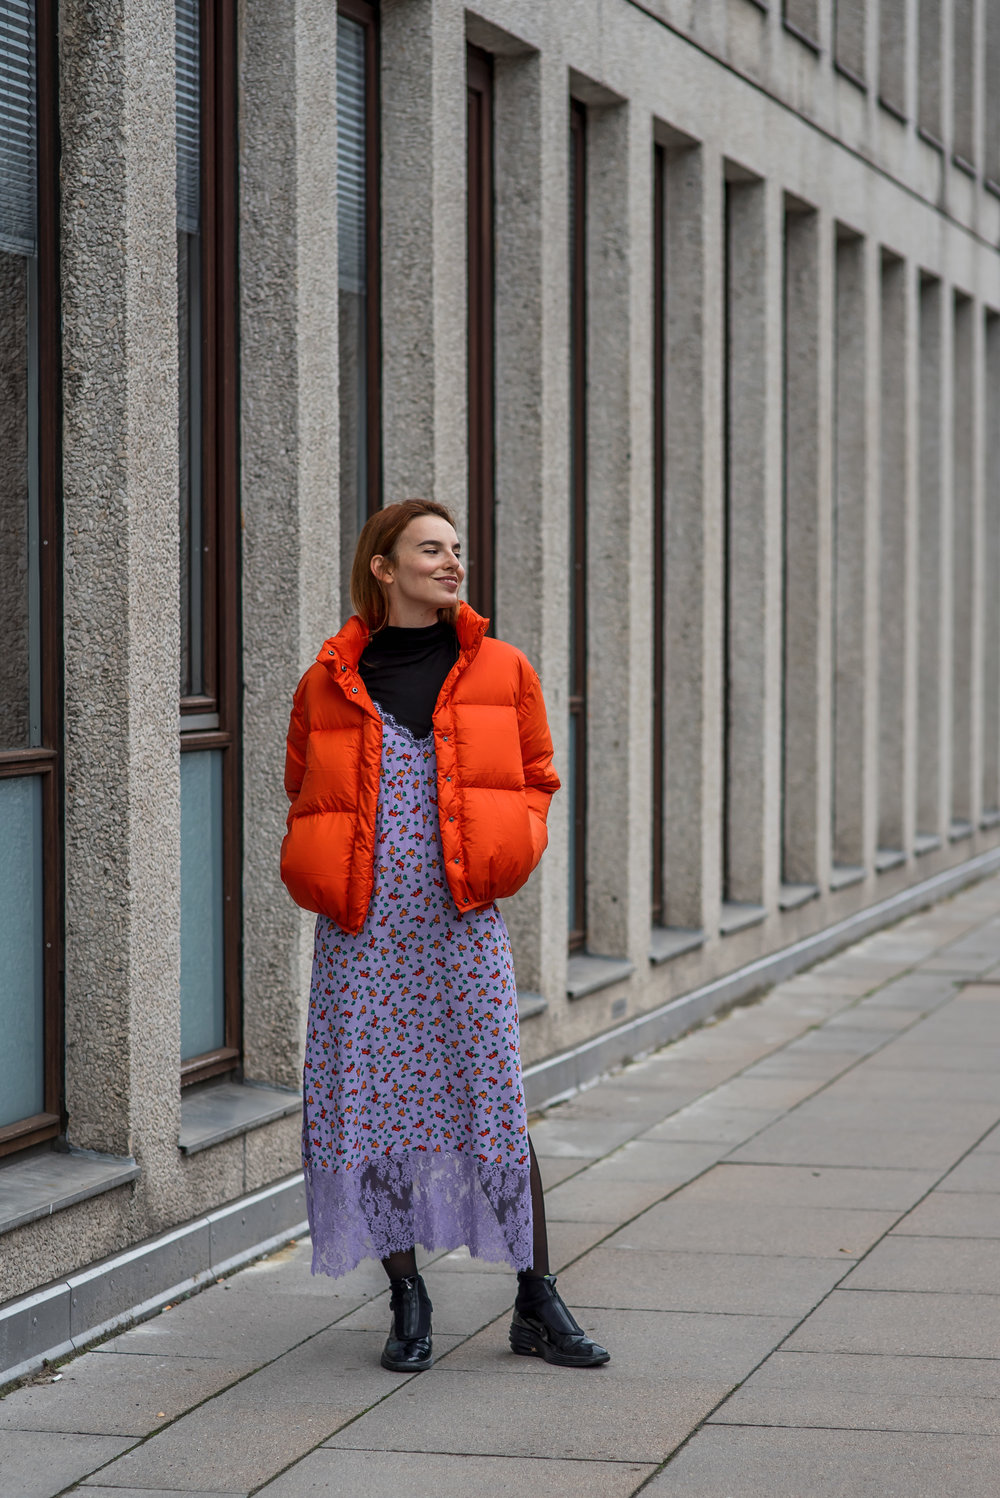 & Other Stories puffer and dress // Nike shoes